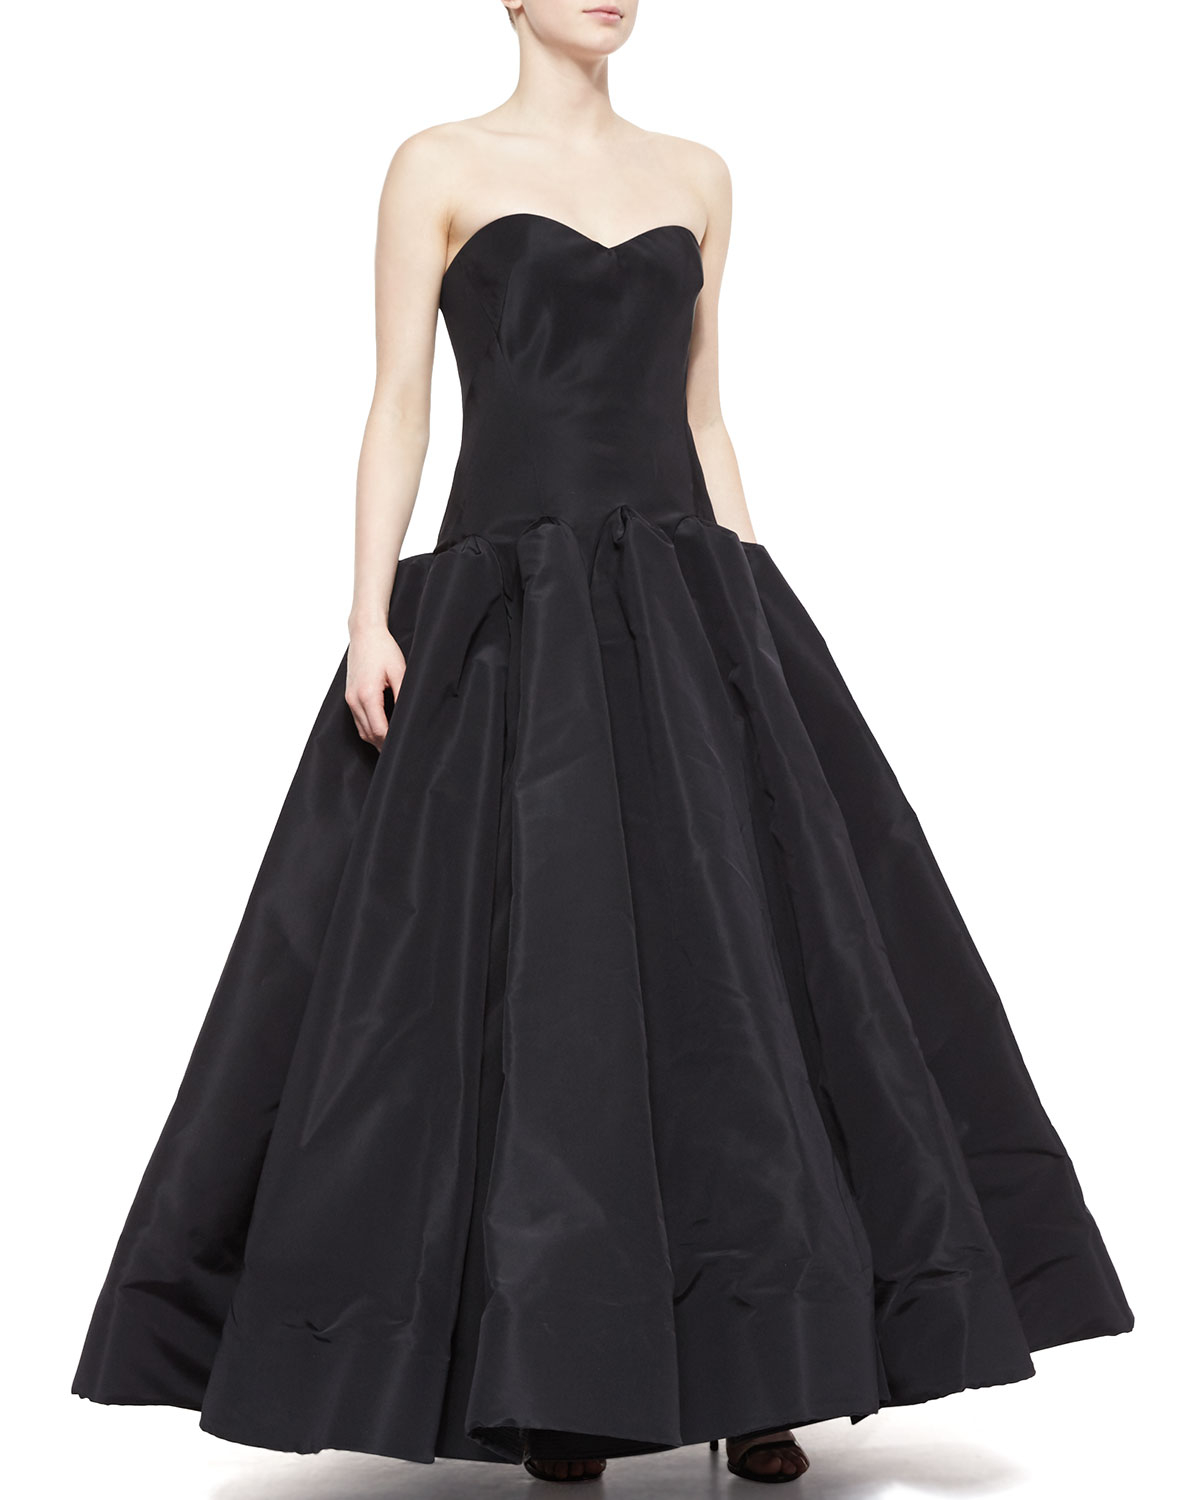 Lyst - Zac Posen Strapless Silk Ball Gown in Black